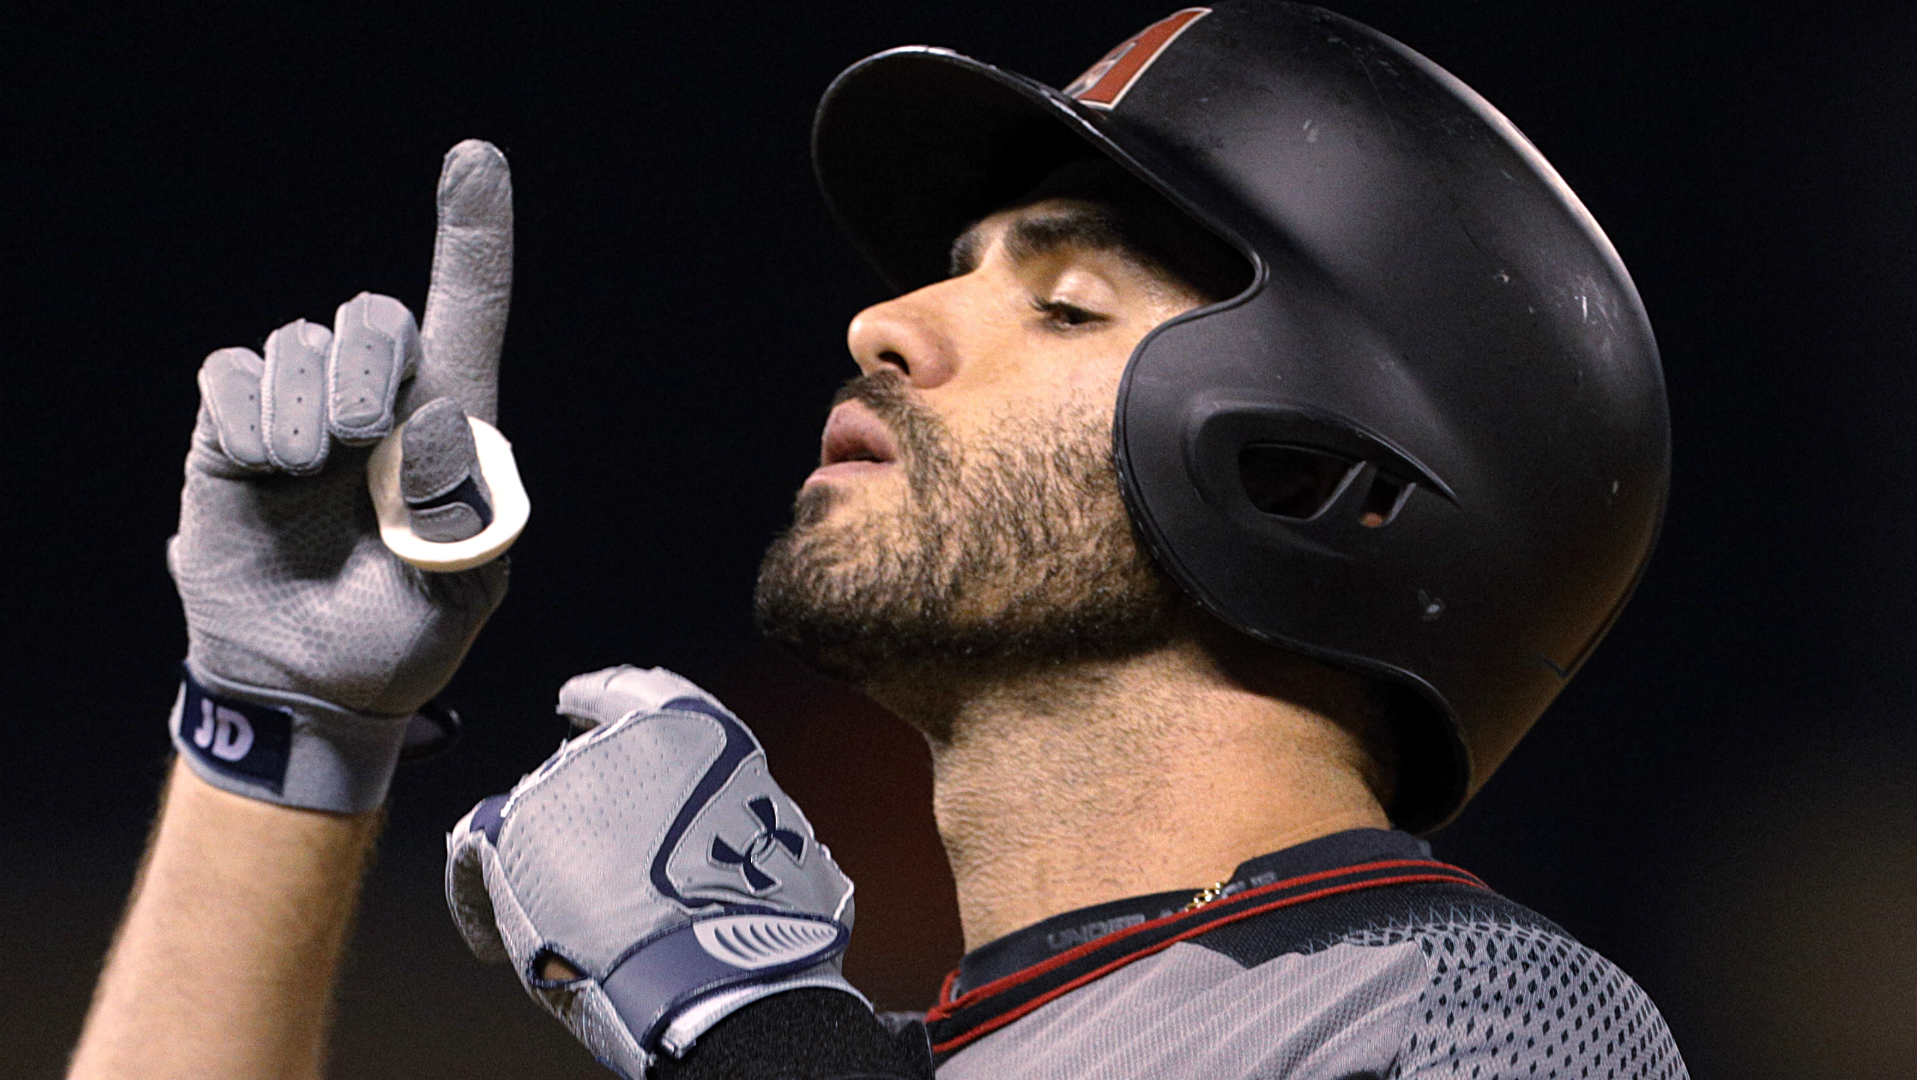 Jd-martinez-090417-getty-ftrjpg_16ruuvxn8km8a142aqpi2jygrs